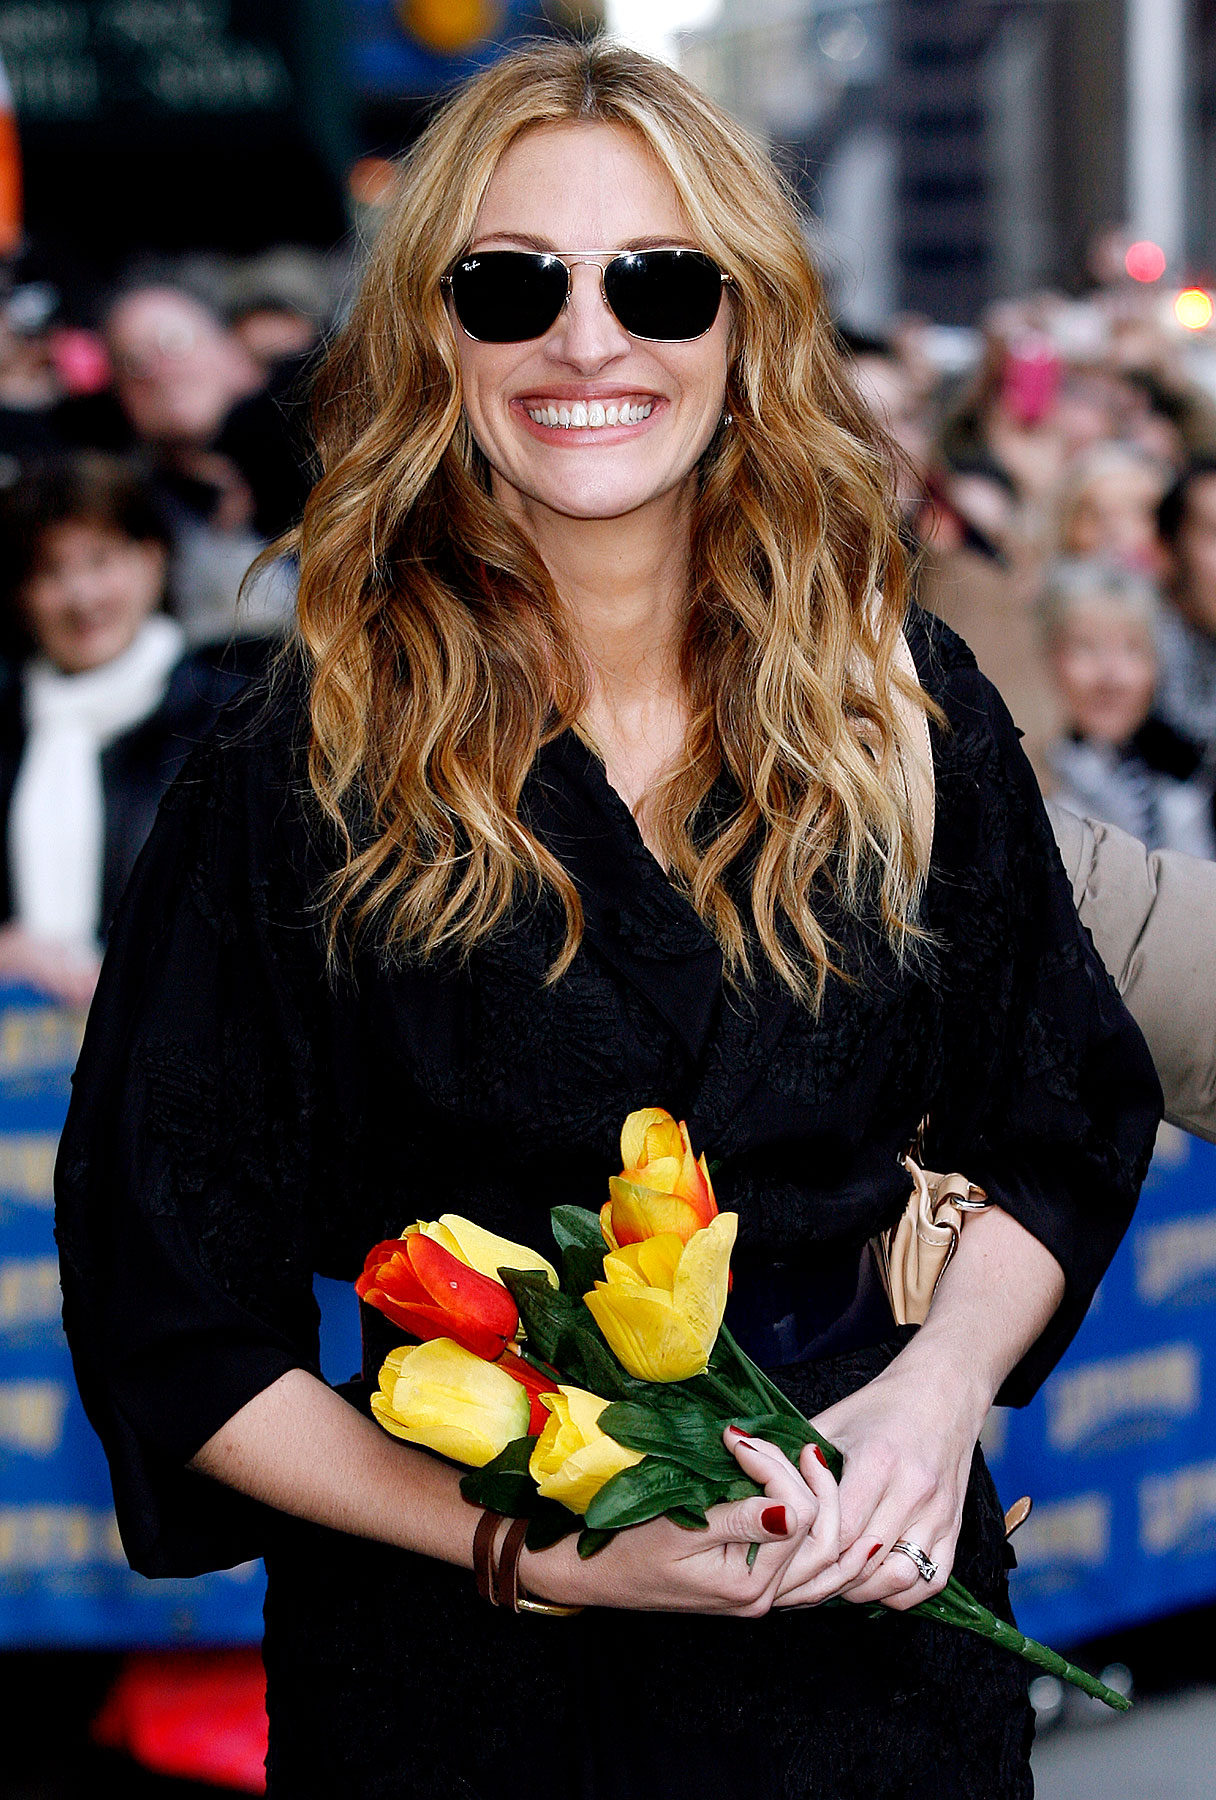 VIDEO: Julia Roberts Has Flowered Hands, Potty Mouth